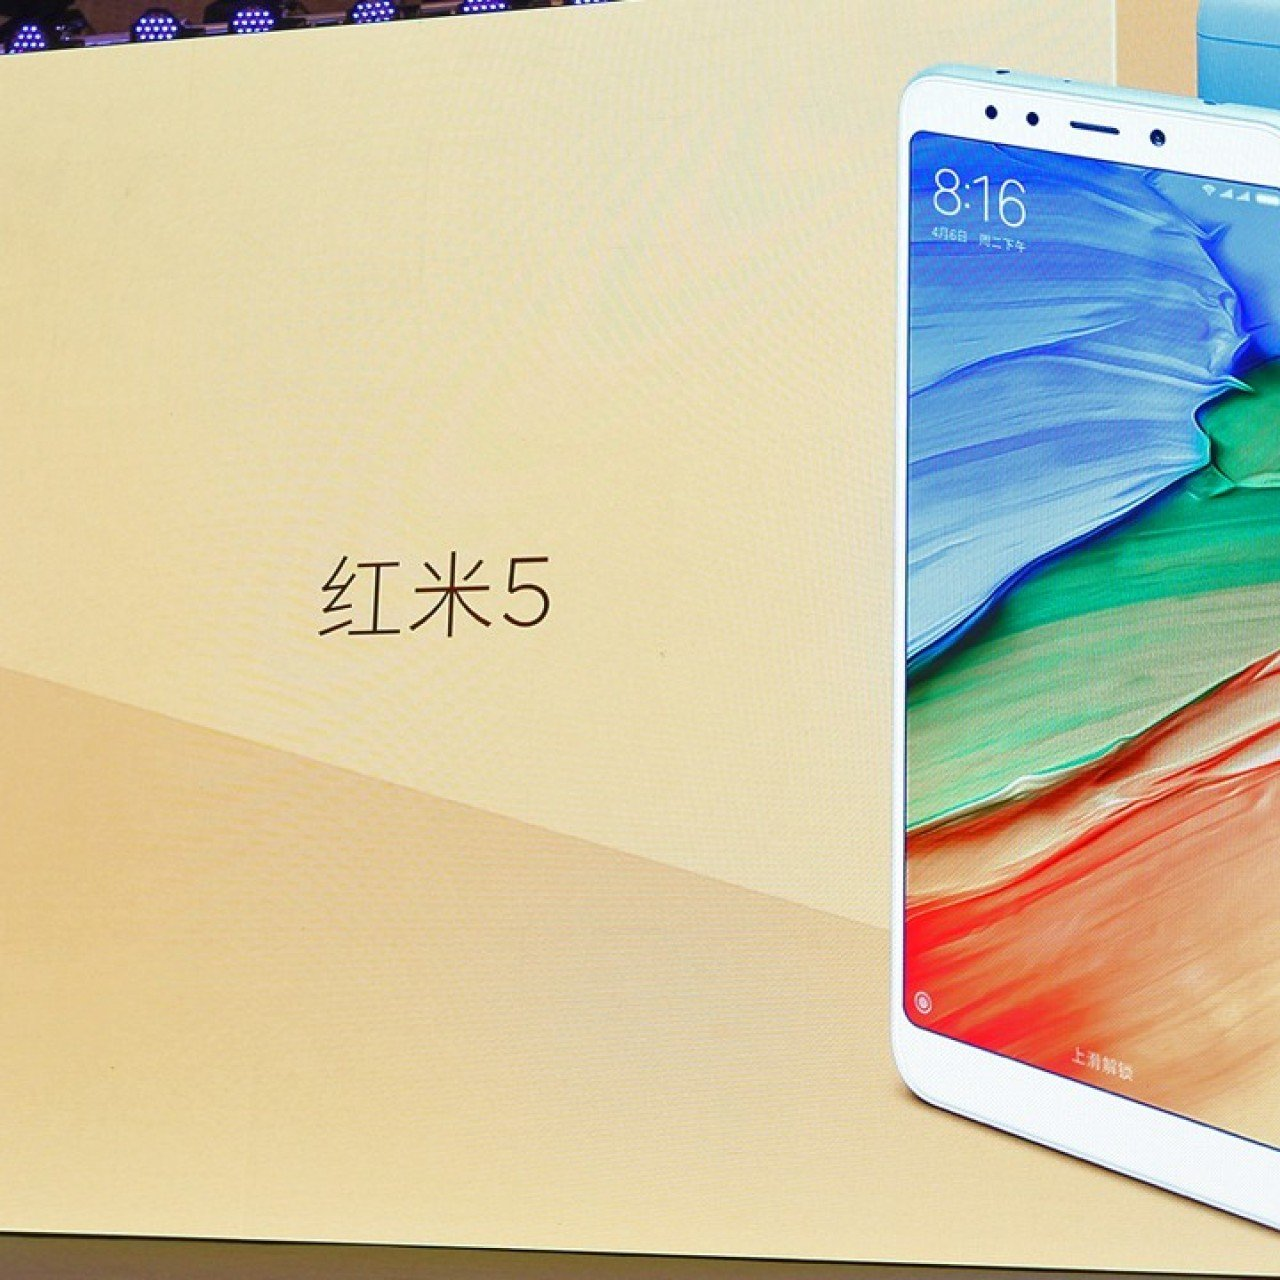 China's Xiaomi rolls out two low price phones it hopes will vault it